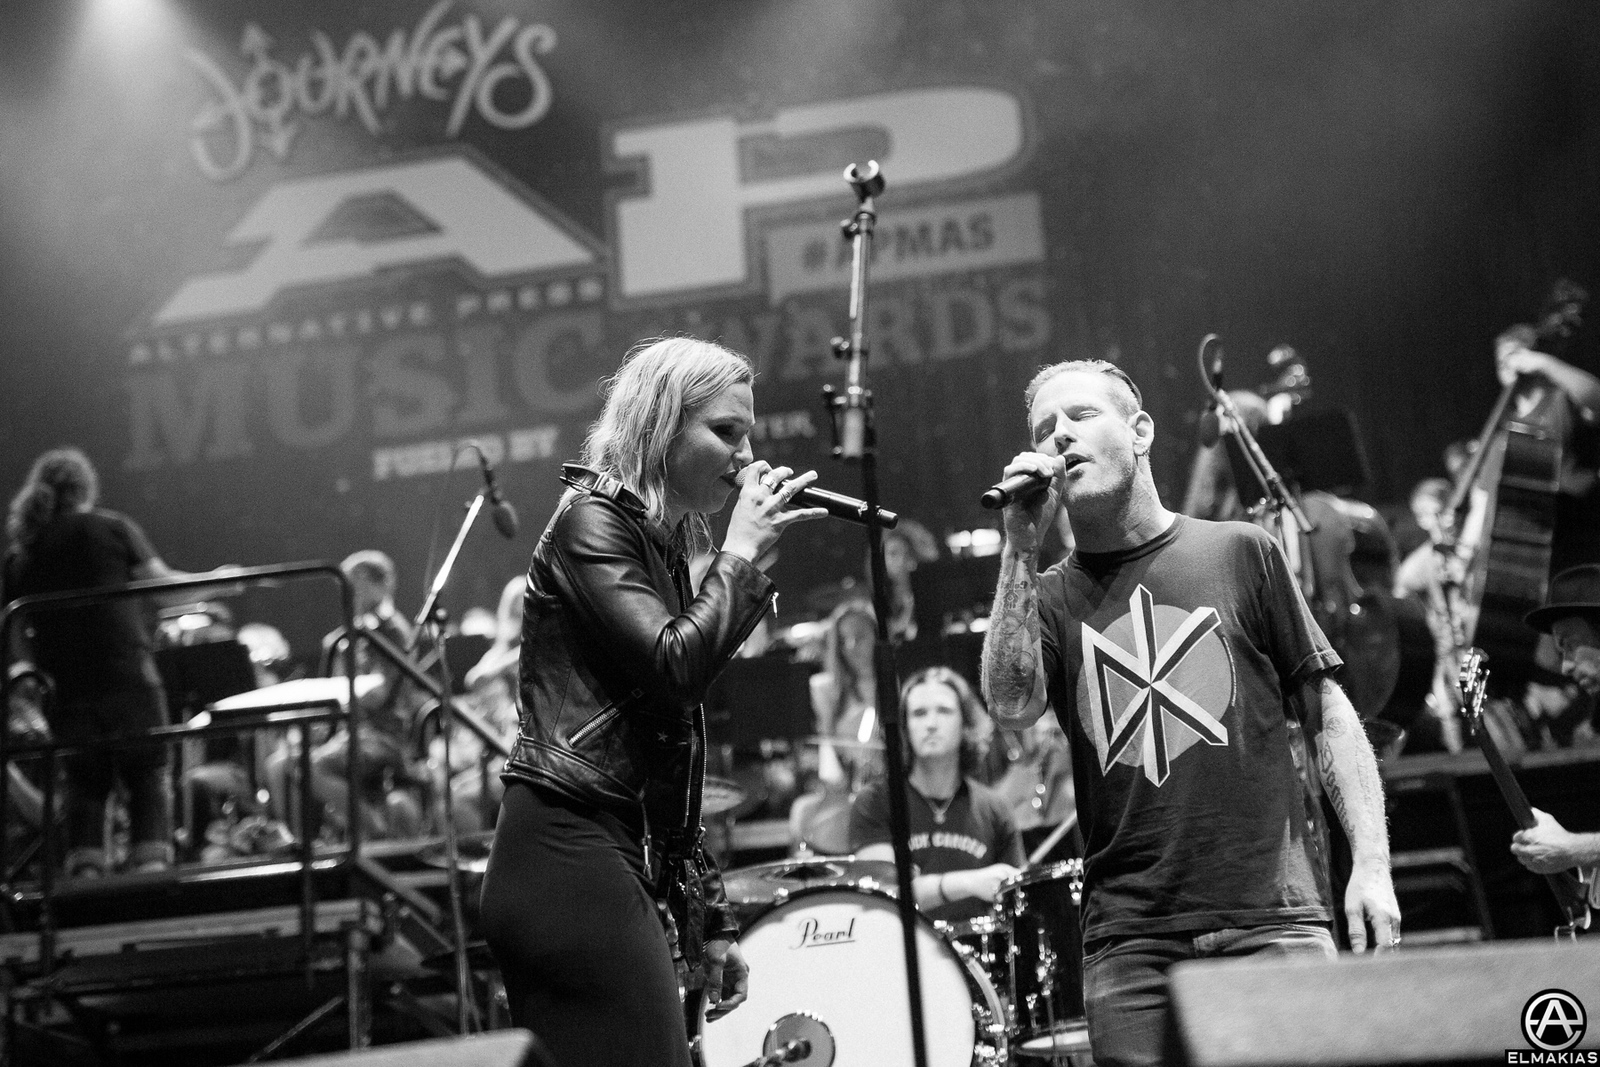 Halestorm and Corey Taylor of Slipknot at rehearsals for the Alternative Press Music Awards 2015 by Adam Elmakias